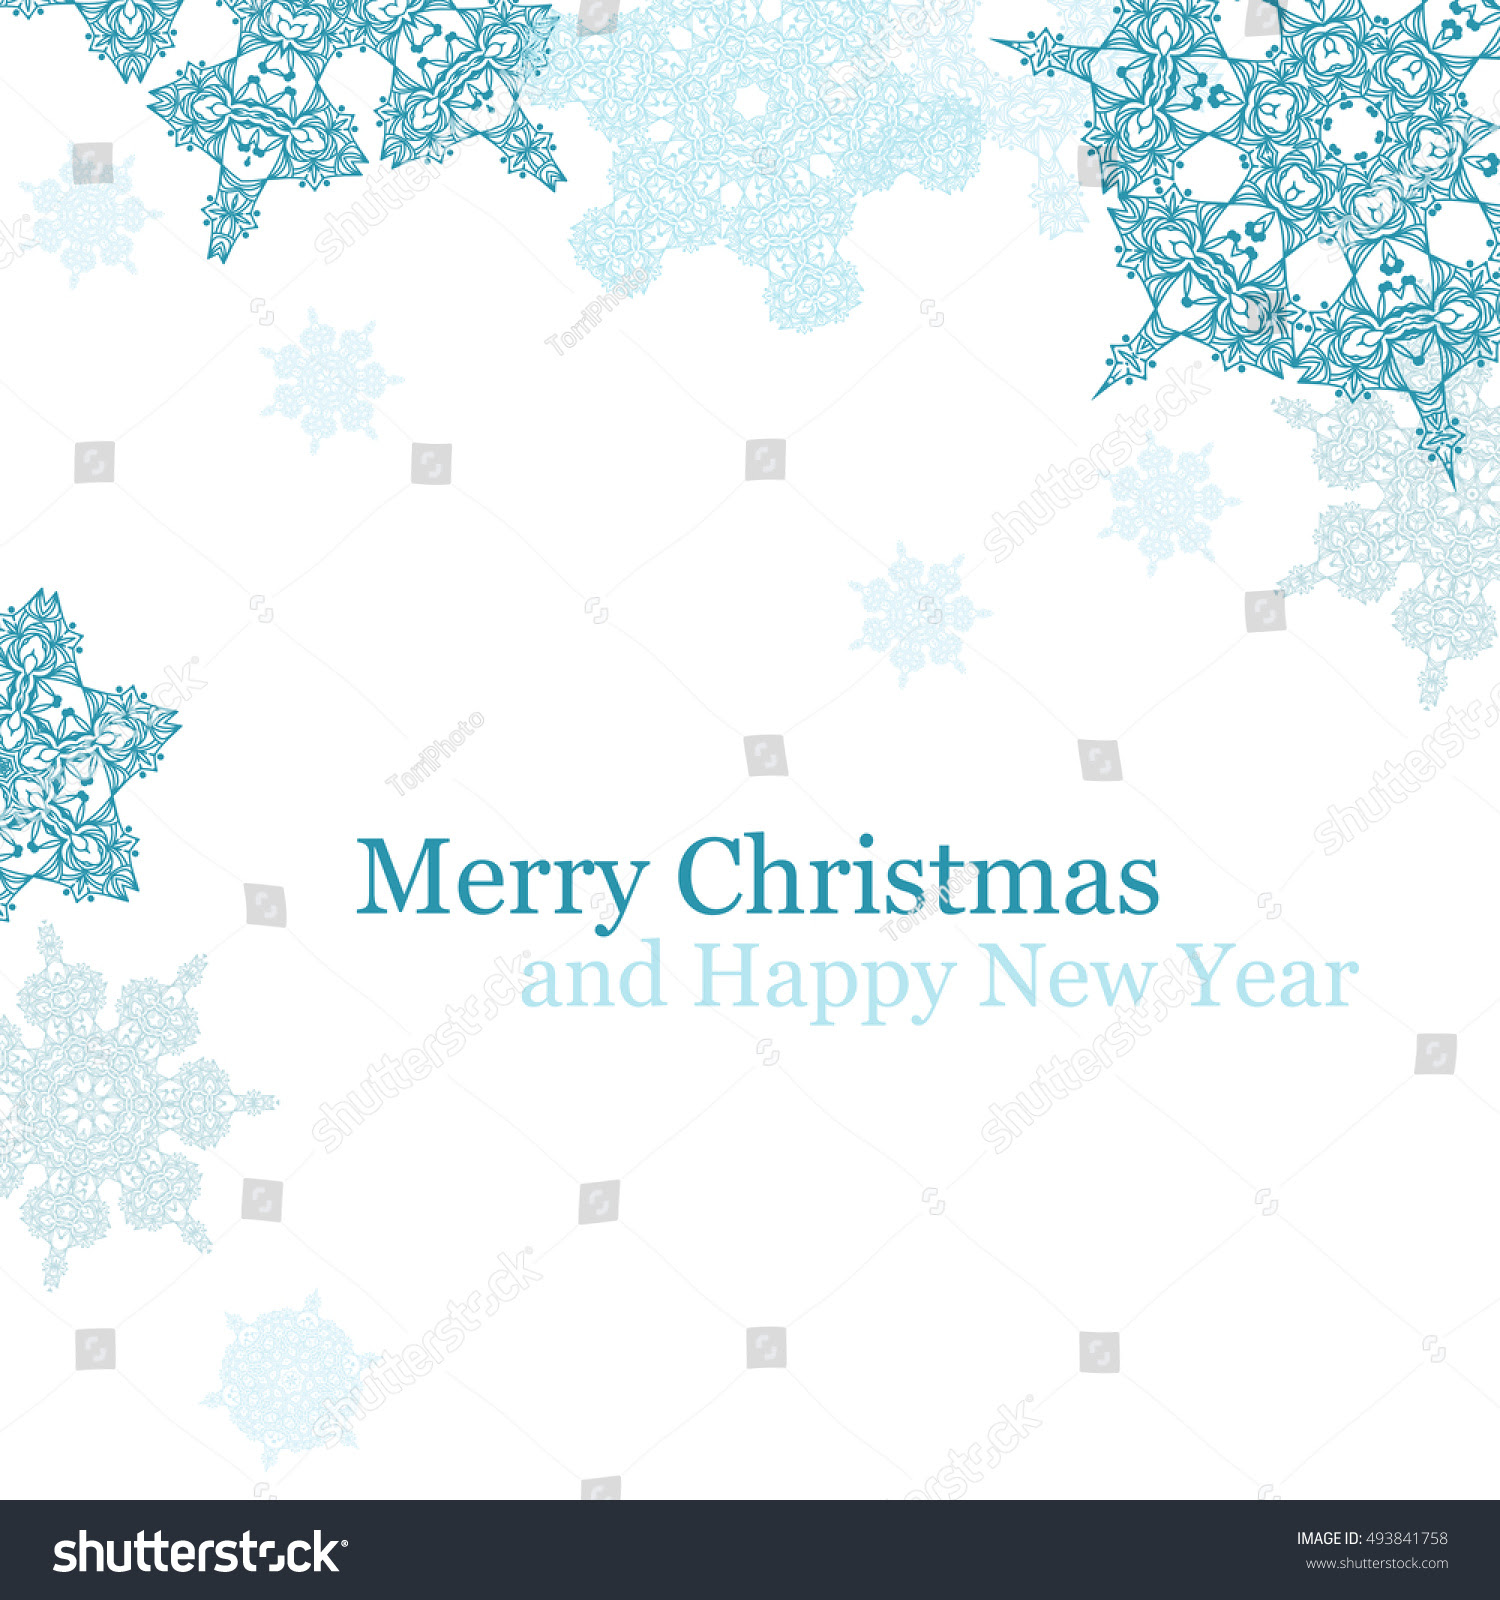 http://www.shutterstock.com/pic-493841758/stock-vector-christmas-card-blue-snowflakes-background-with-copy-space-vector-illustration-eps8.html